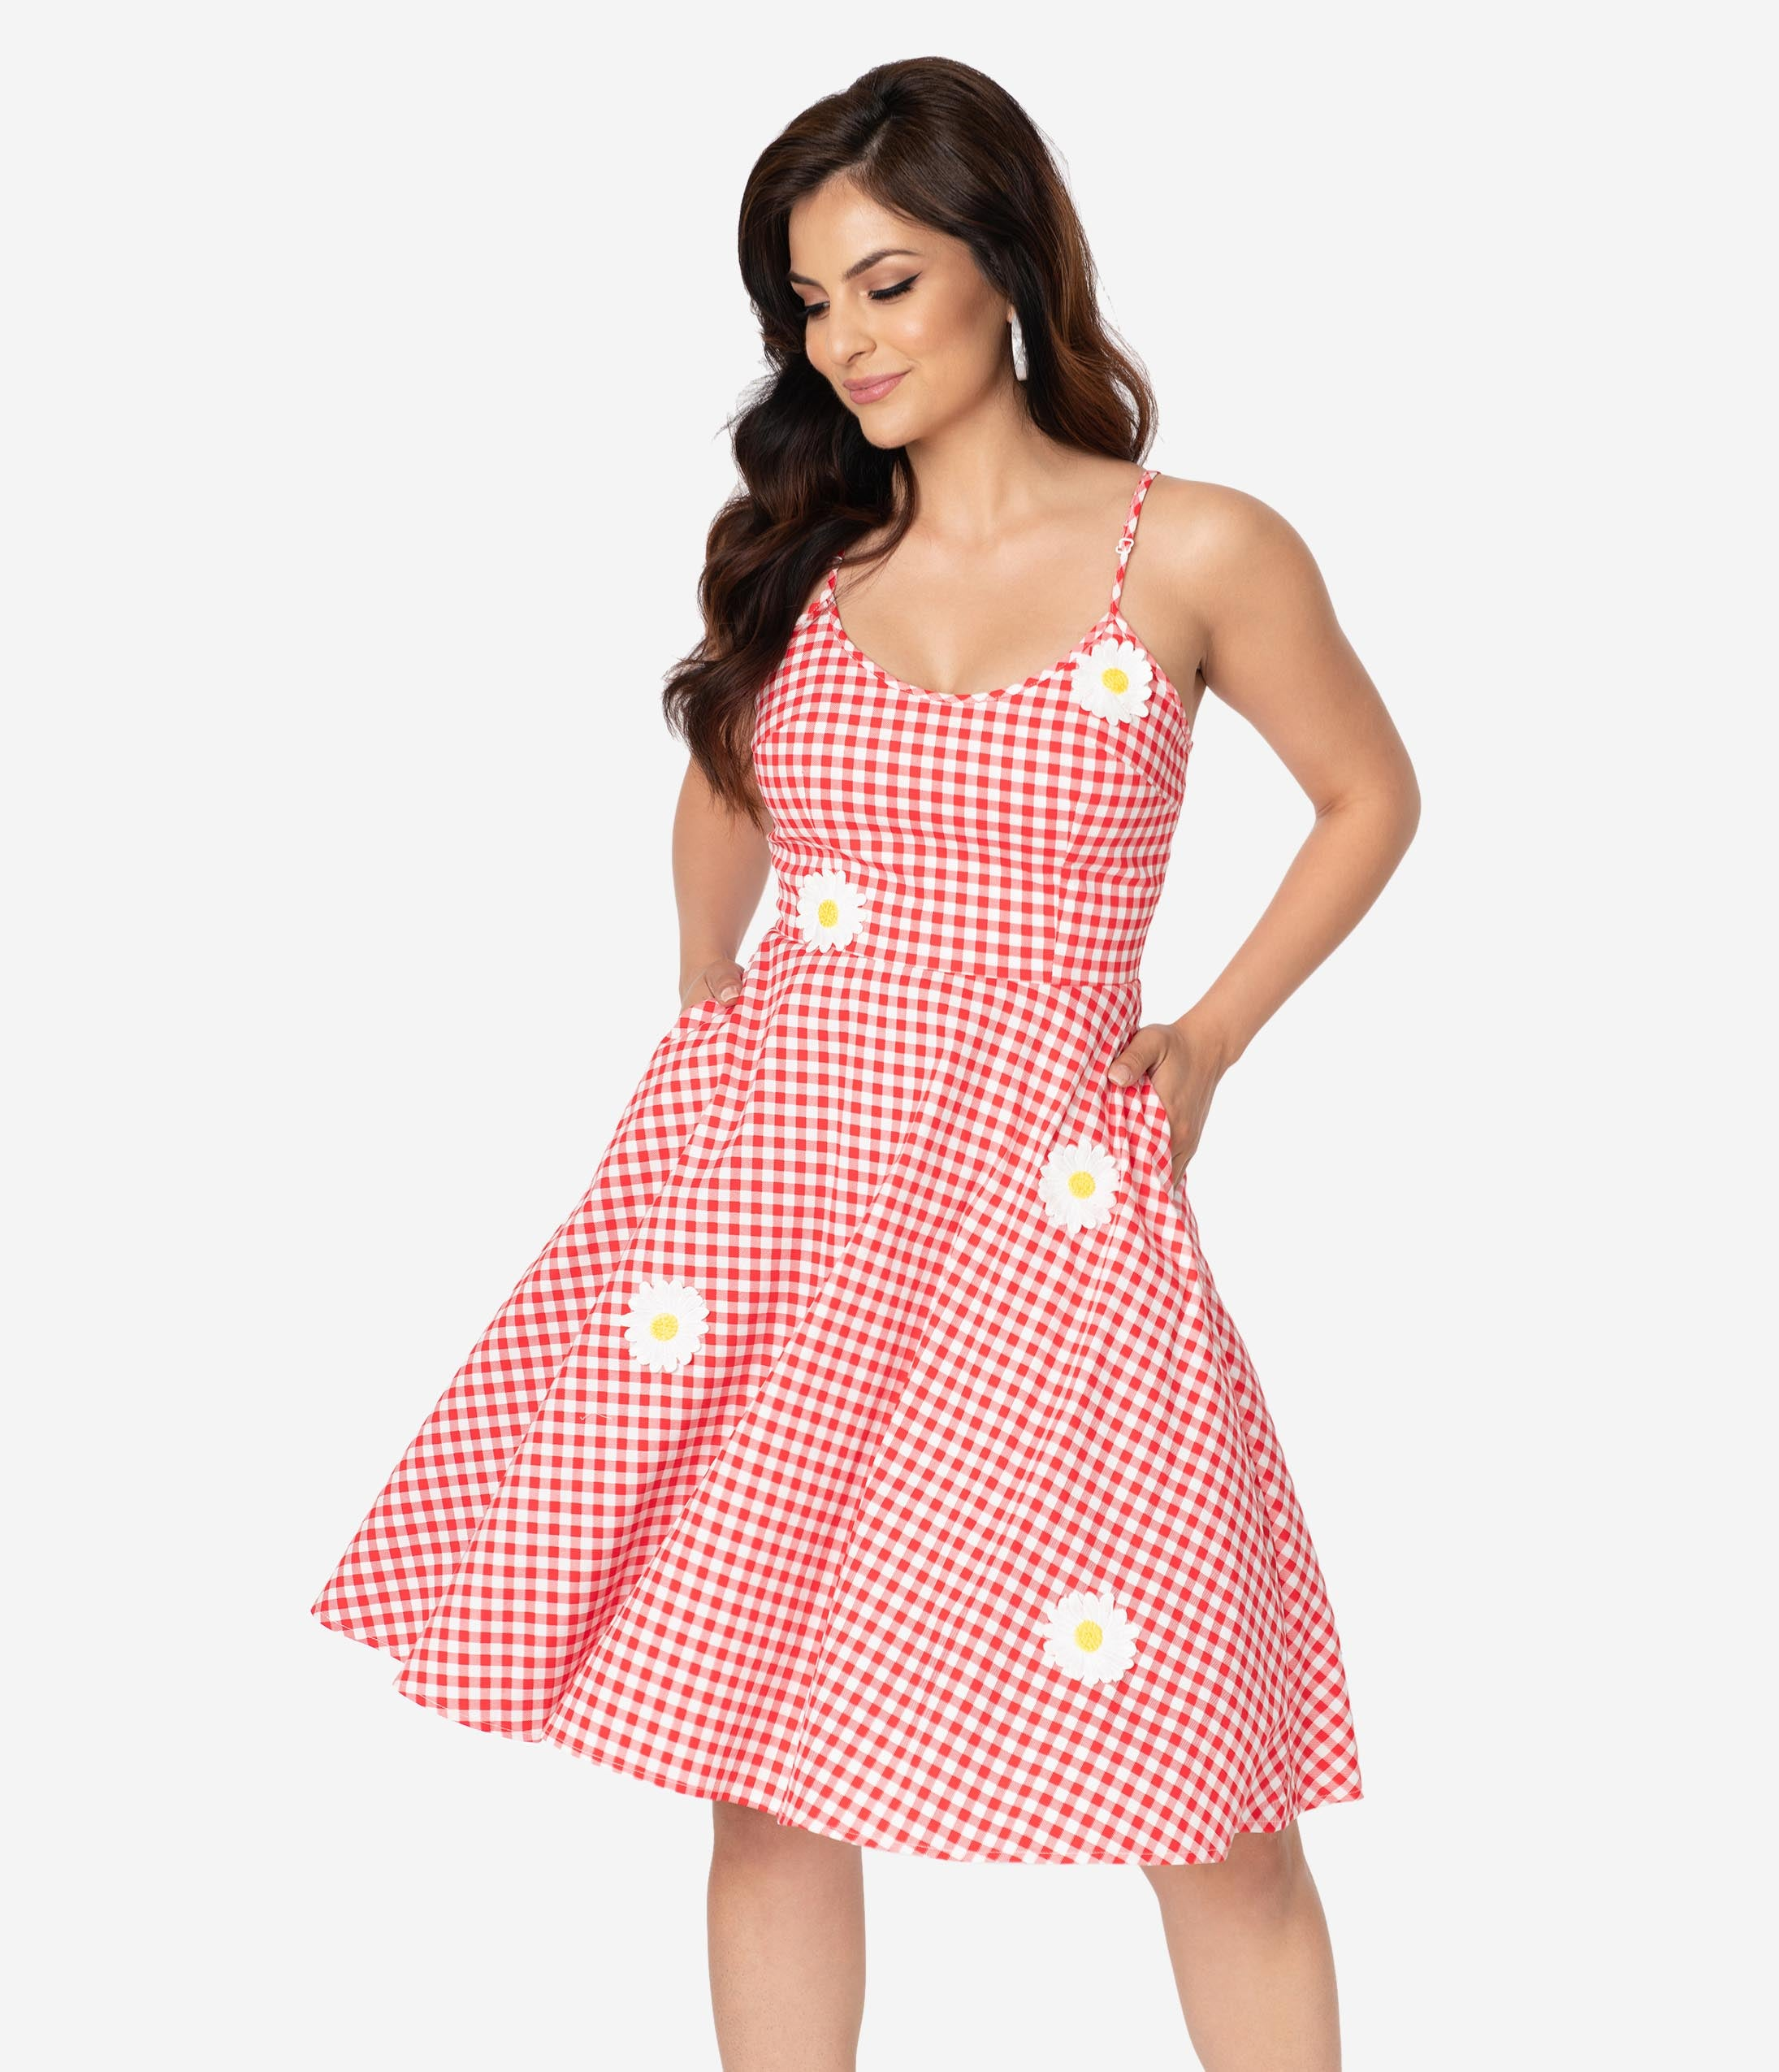 Checkered Gingham Print Swing-Skirt Spaghetti Strap Applique Embroidered Pocketed Fitted Cotton Dress